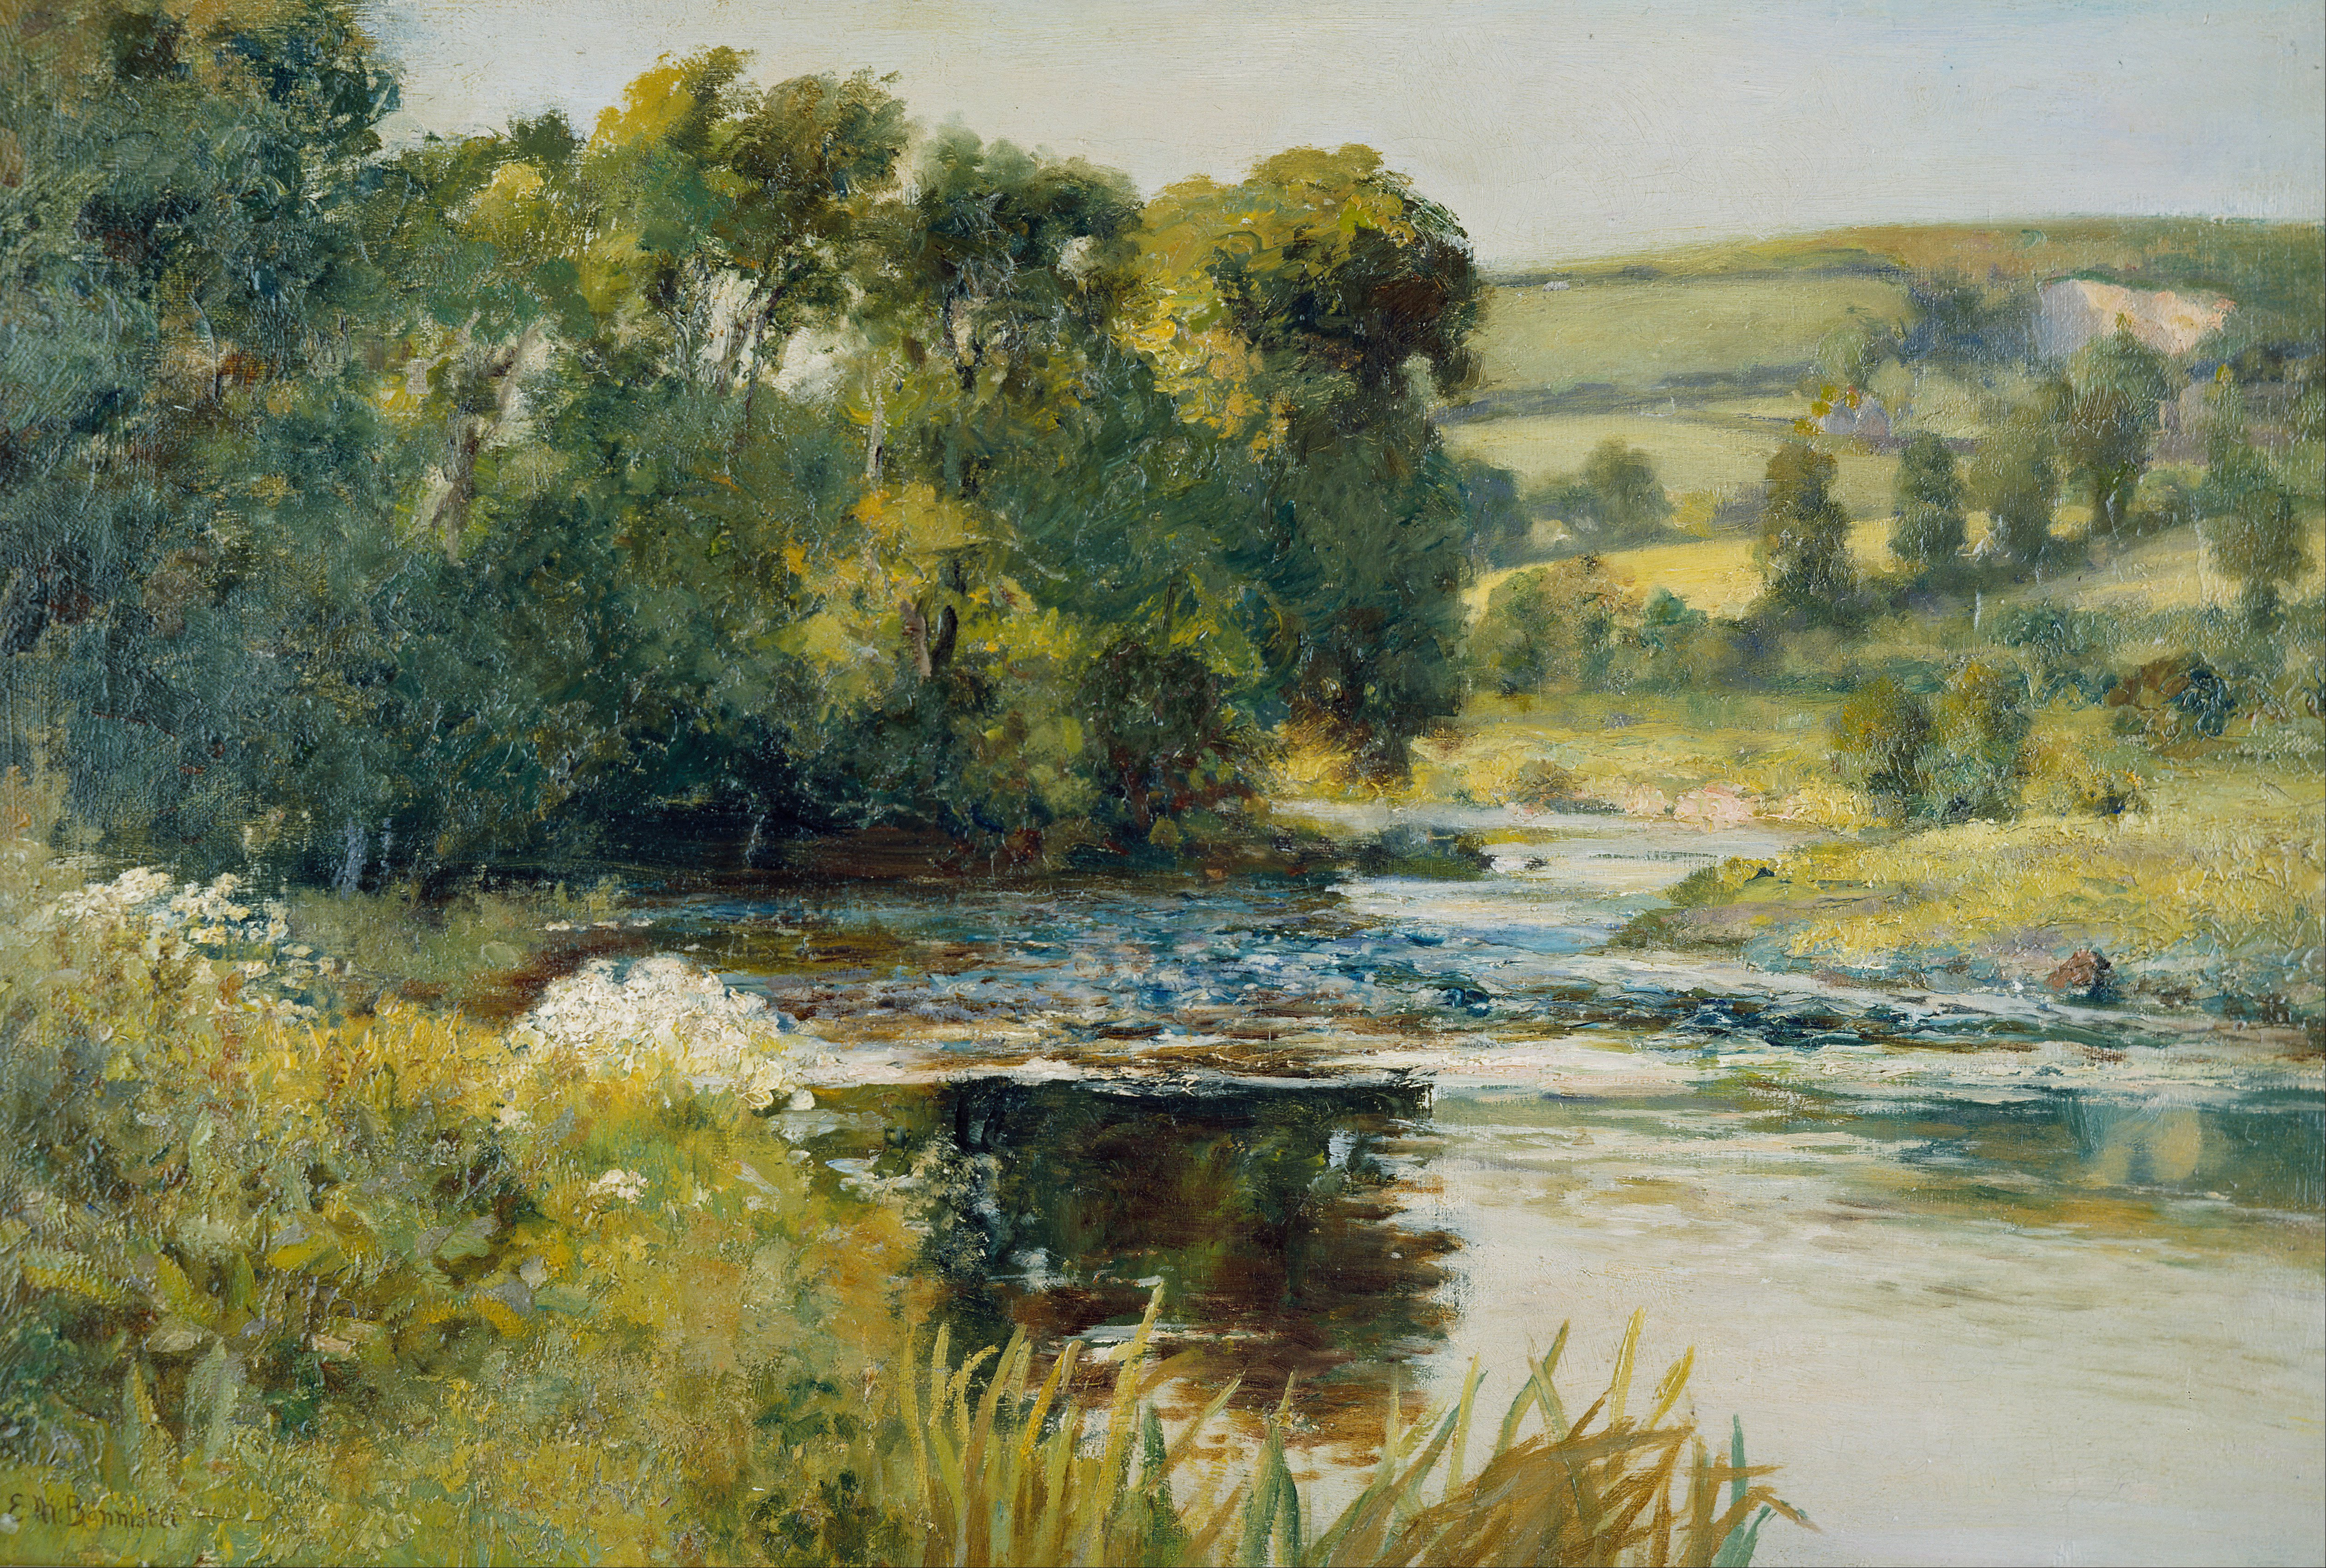 File:Edward Mitchell Bannister - Streamside - Google Art ...